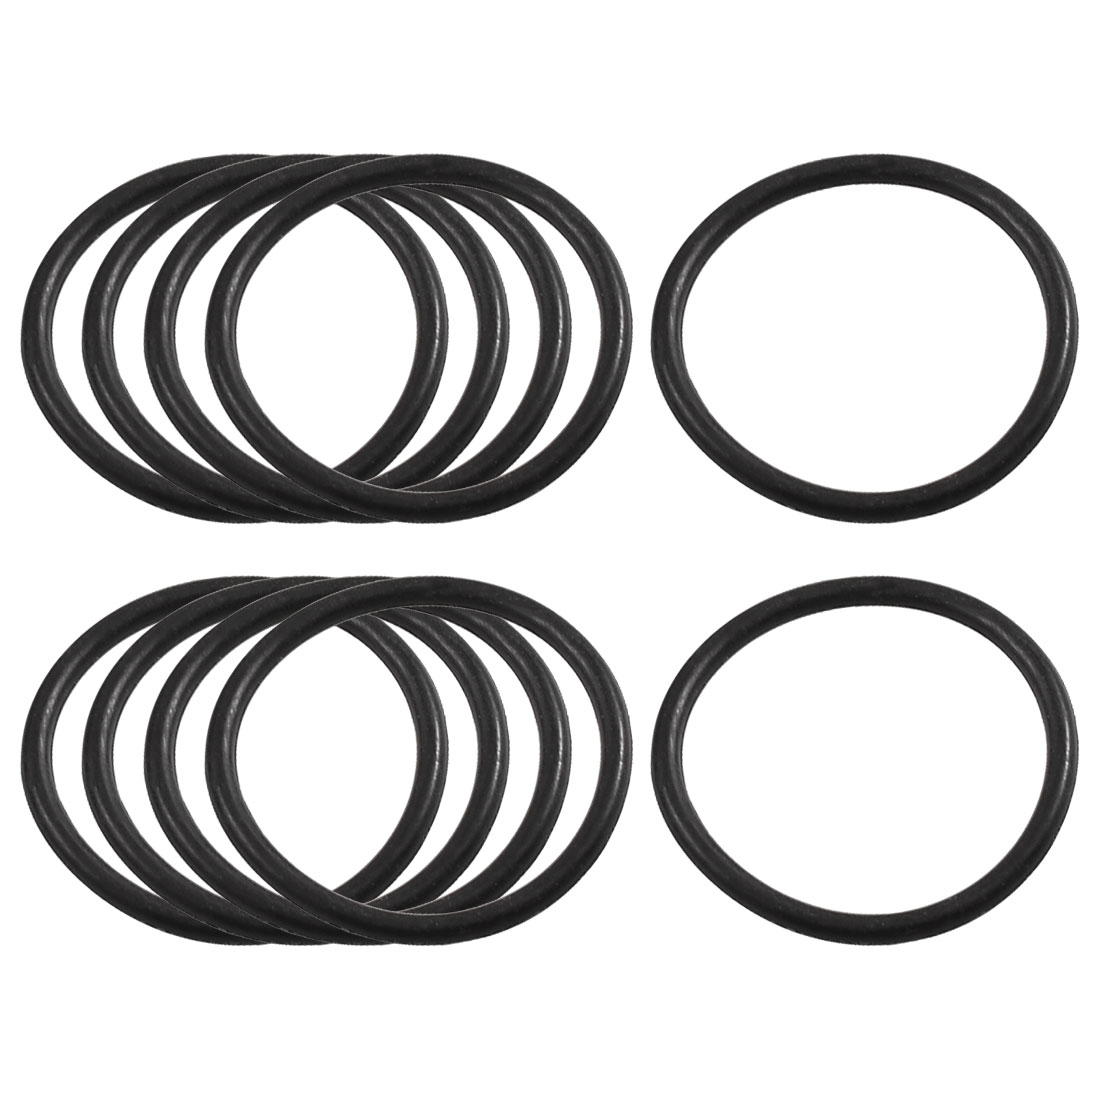 10 Pcs 40mm x 34mm x 3.1mm Mechanical Rubber O Ring Oil Seal Gaskets Black